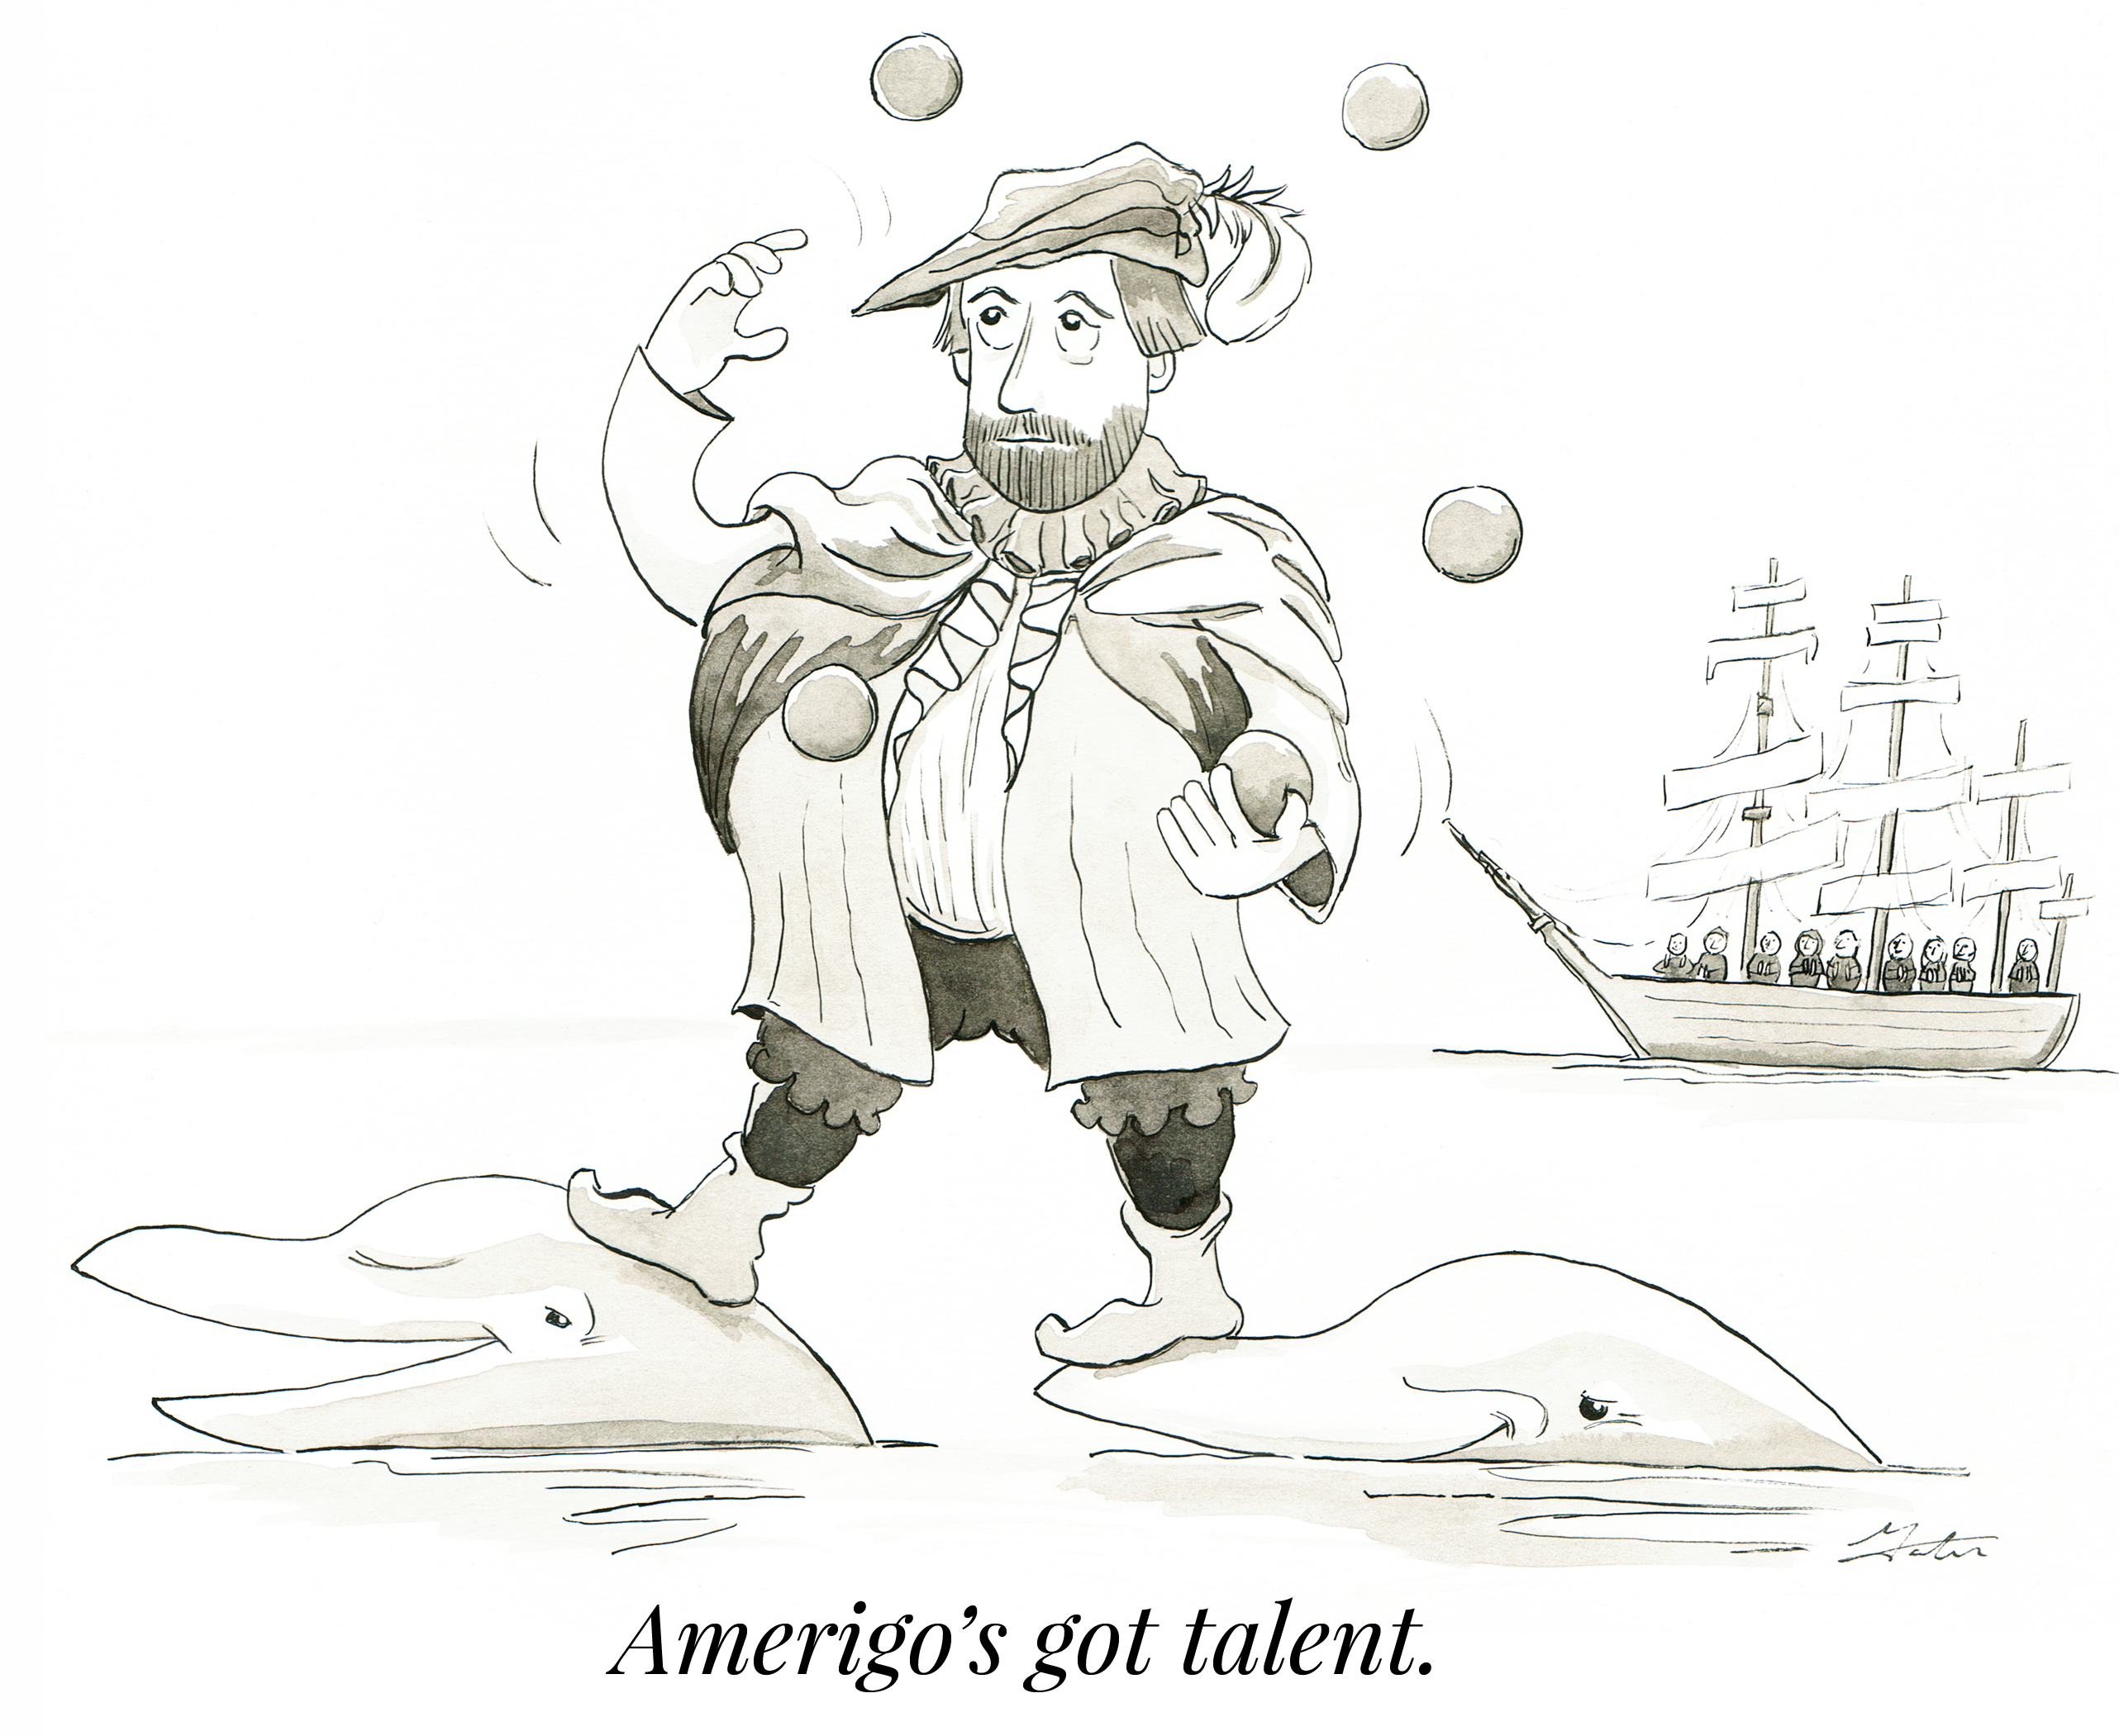 America's Got Talent: Amerigo